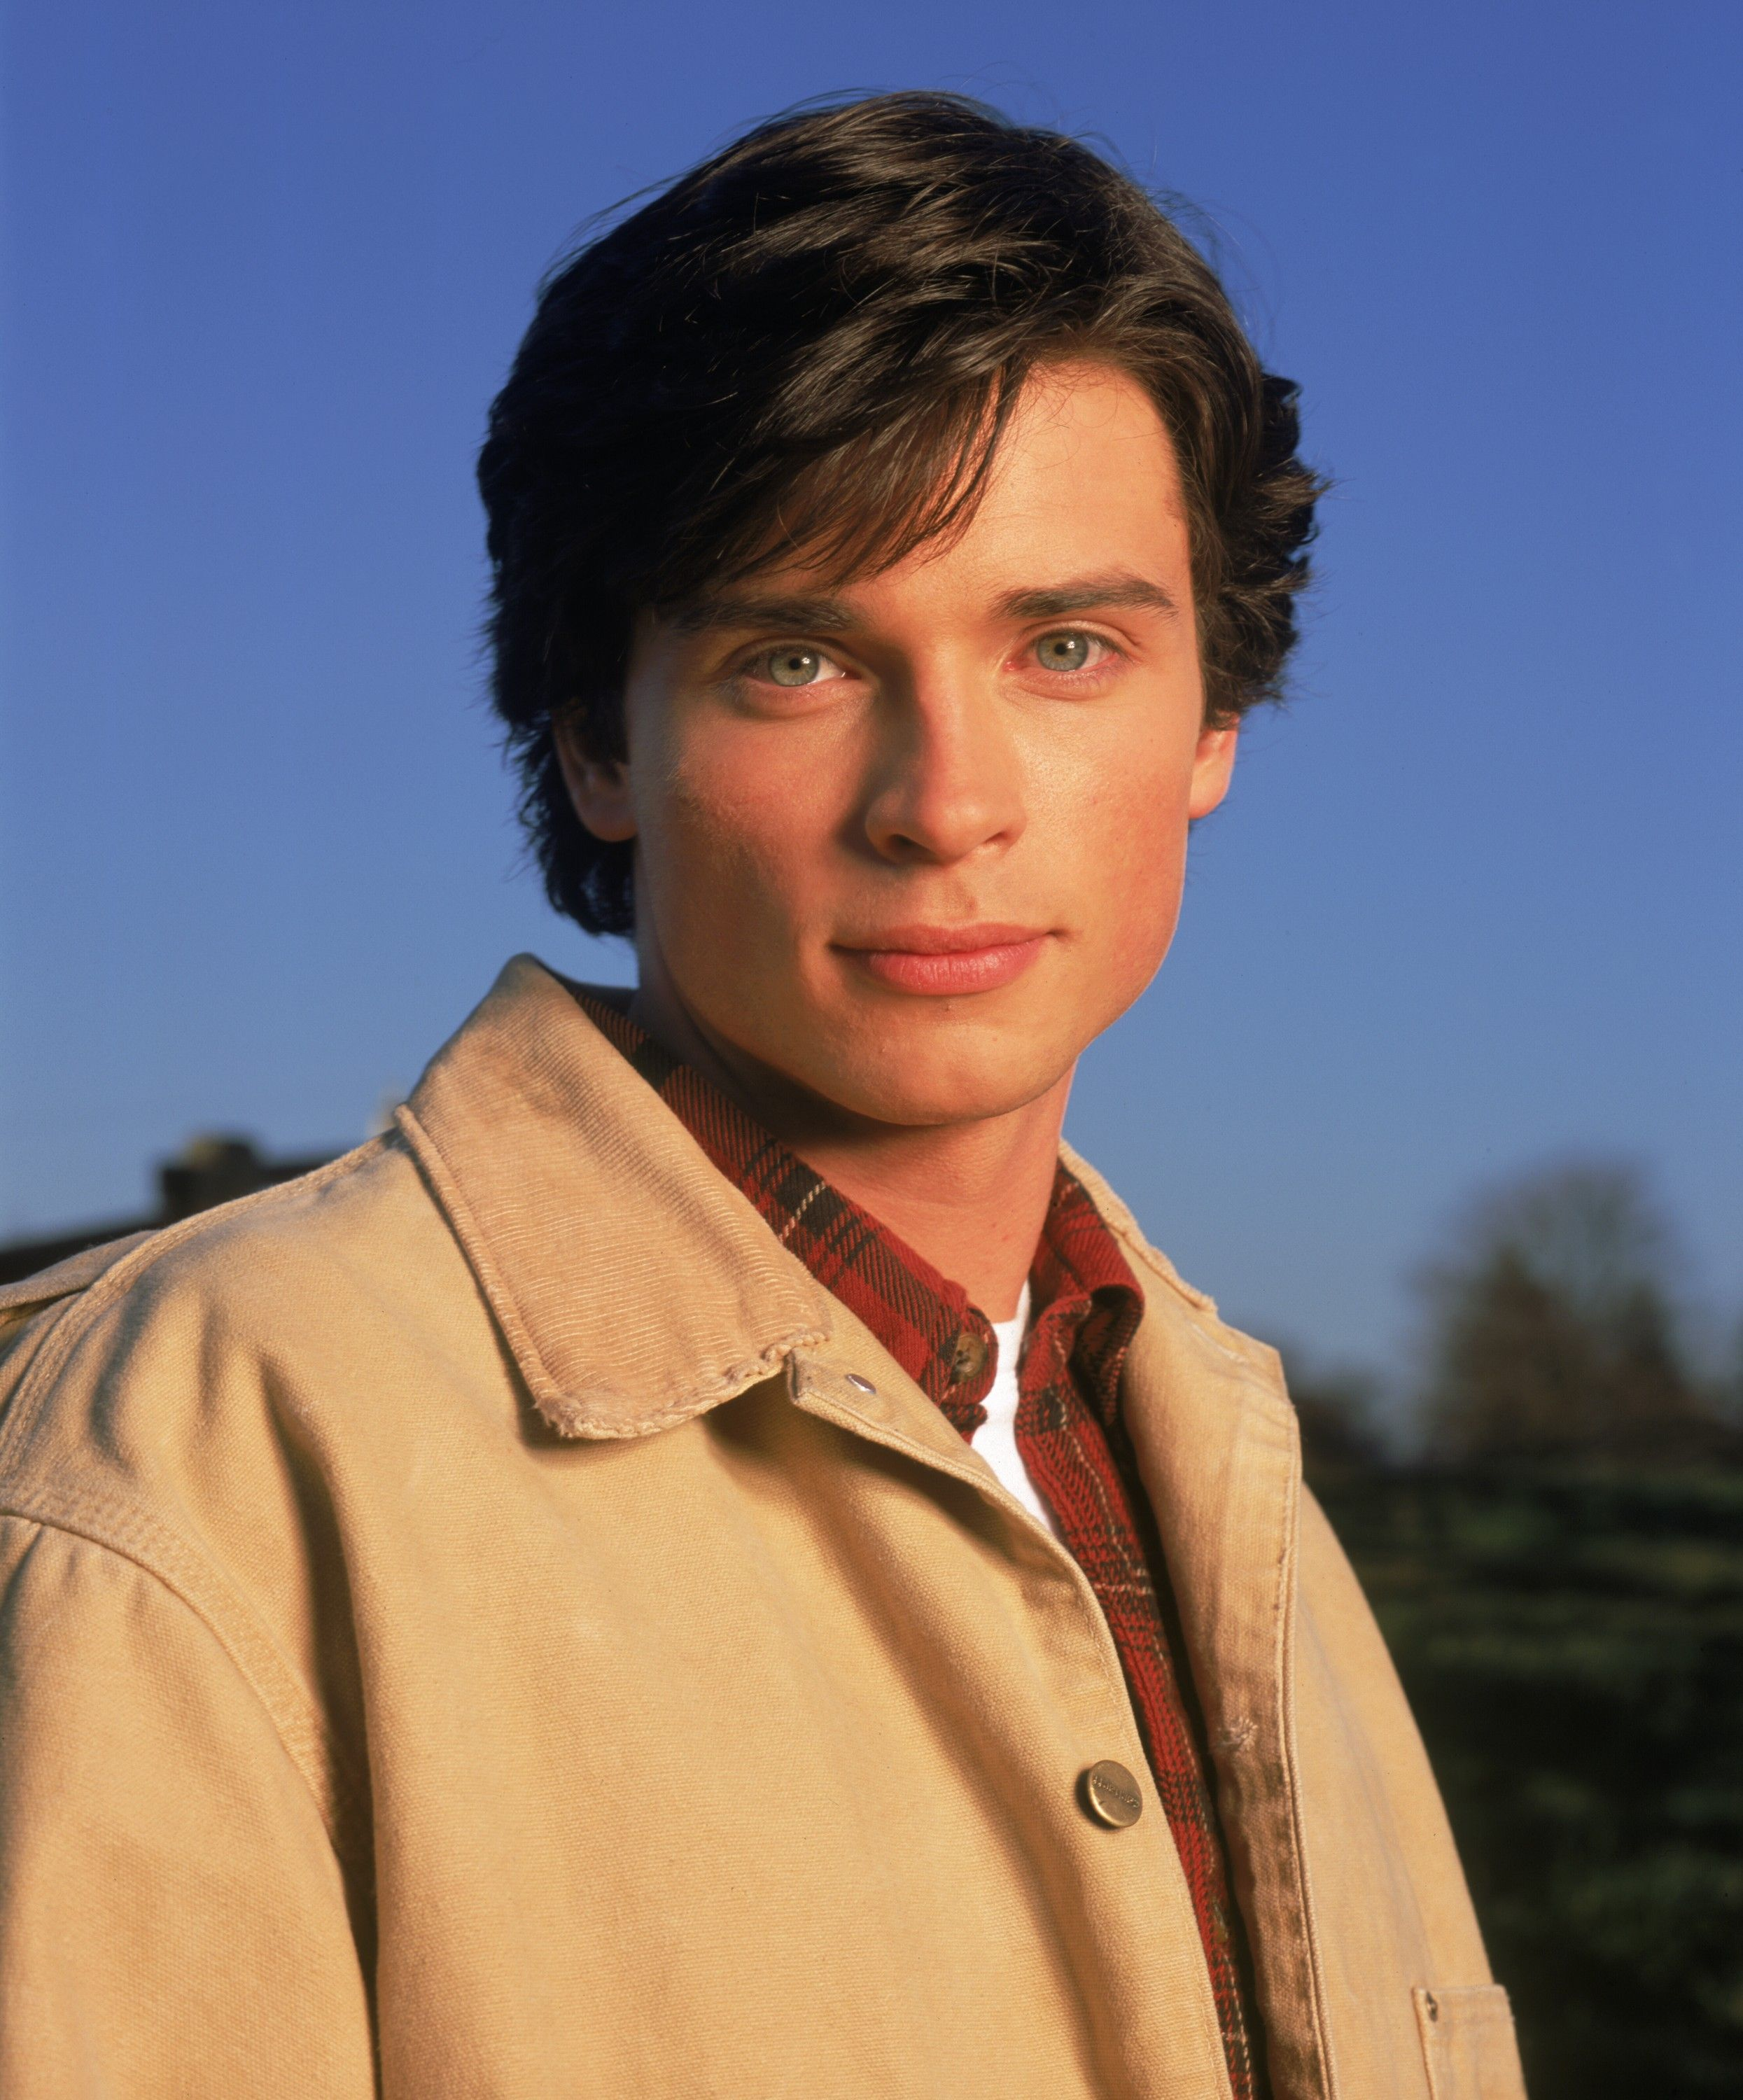 tom welling wedding pictures - HD 2490×3000